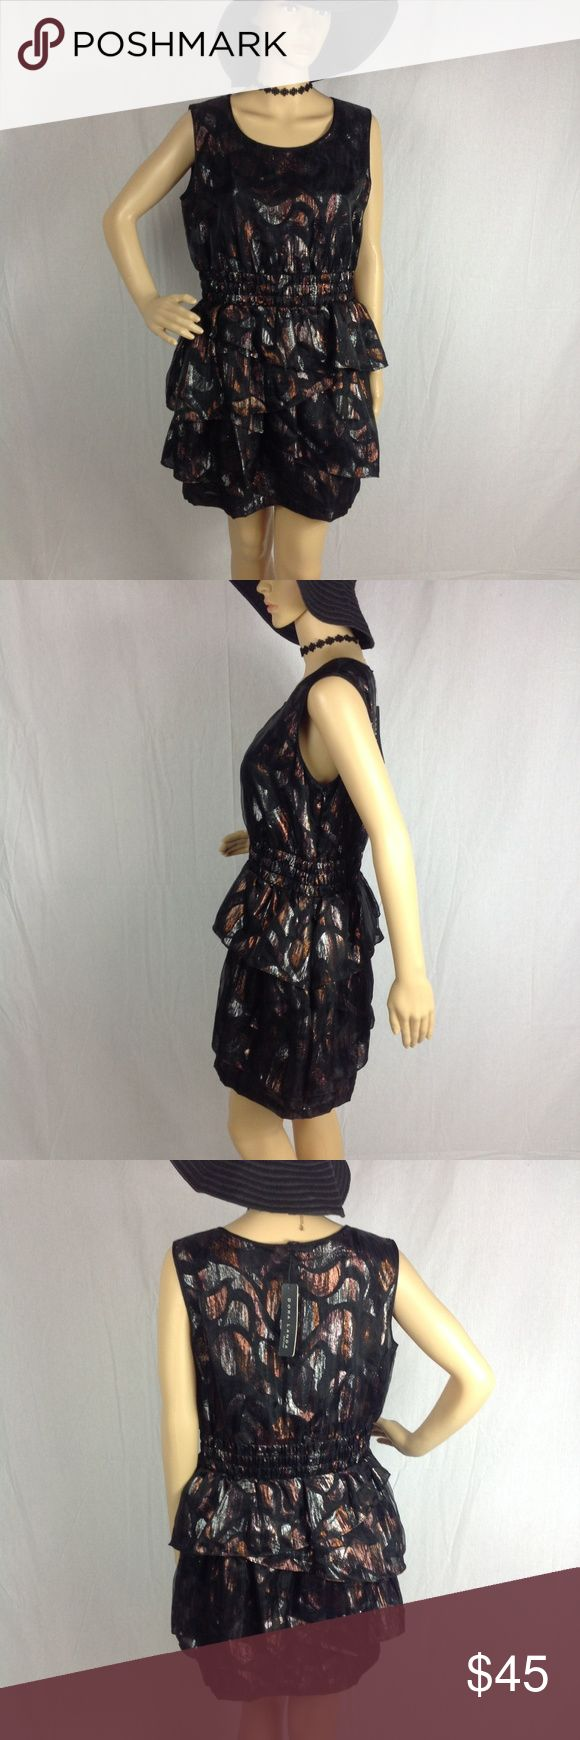 NWT Doro Landa Metallic Mini Dress Size 12 Layered This dress is black, burnt orange, and silver. The waist is gathered and stretches. See all pictures! As always offers and bundles are welcome. Feel free to add one or more items to a bundle for a private discount offer!!! Armpit to armpit is 19.25 inches across Waist is 15.75 inches across Hips are 20 inches across Length is 32.75 inches Doro Landa Dresses Mini